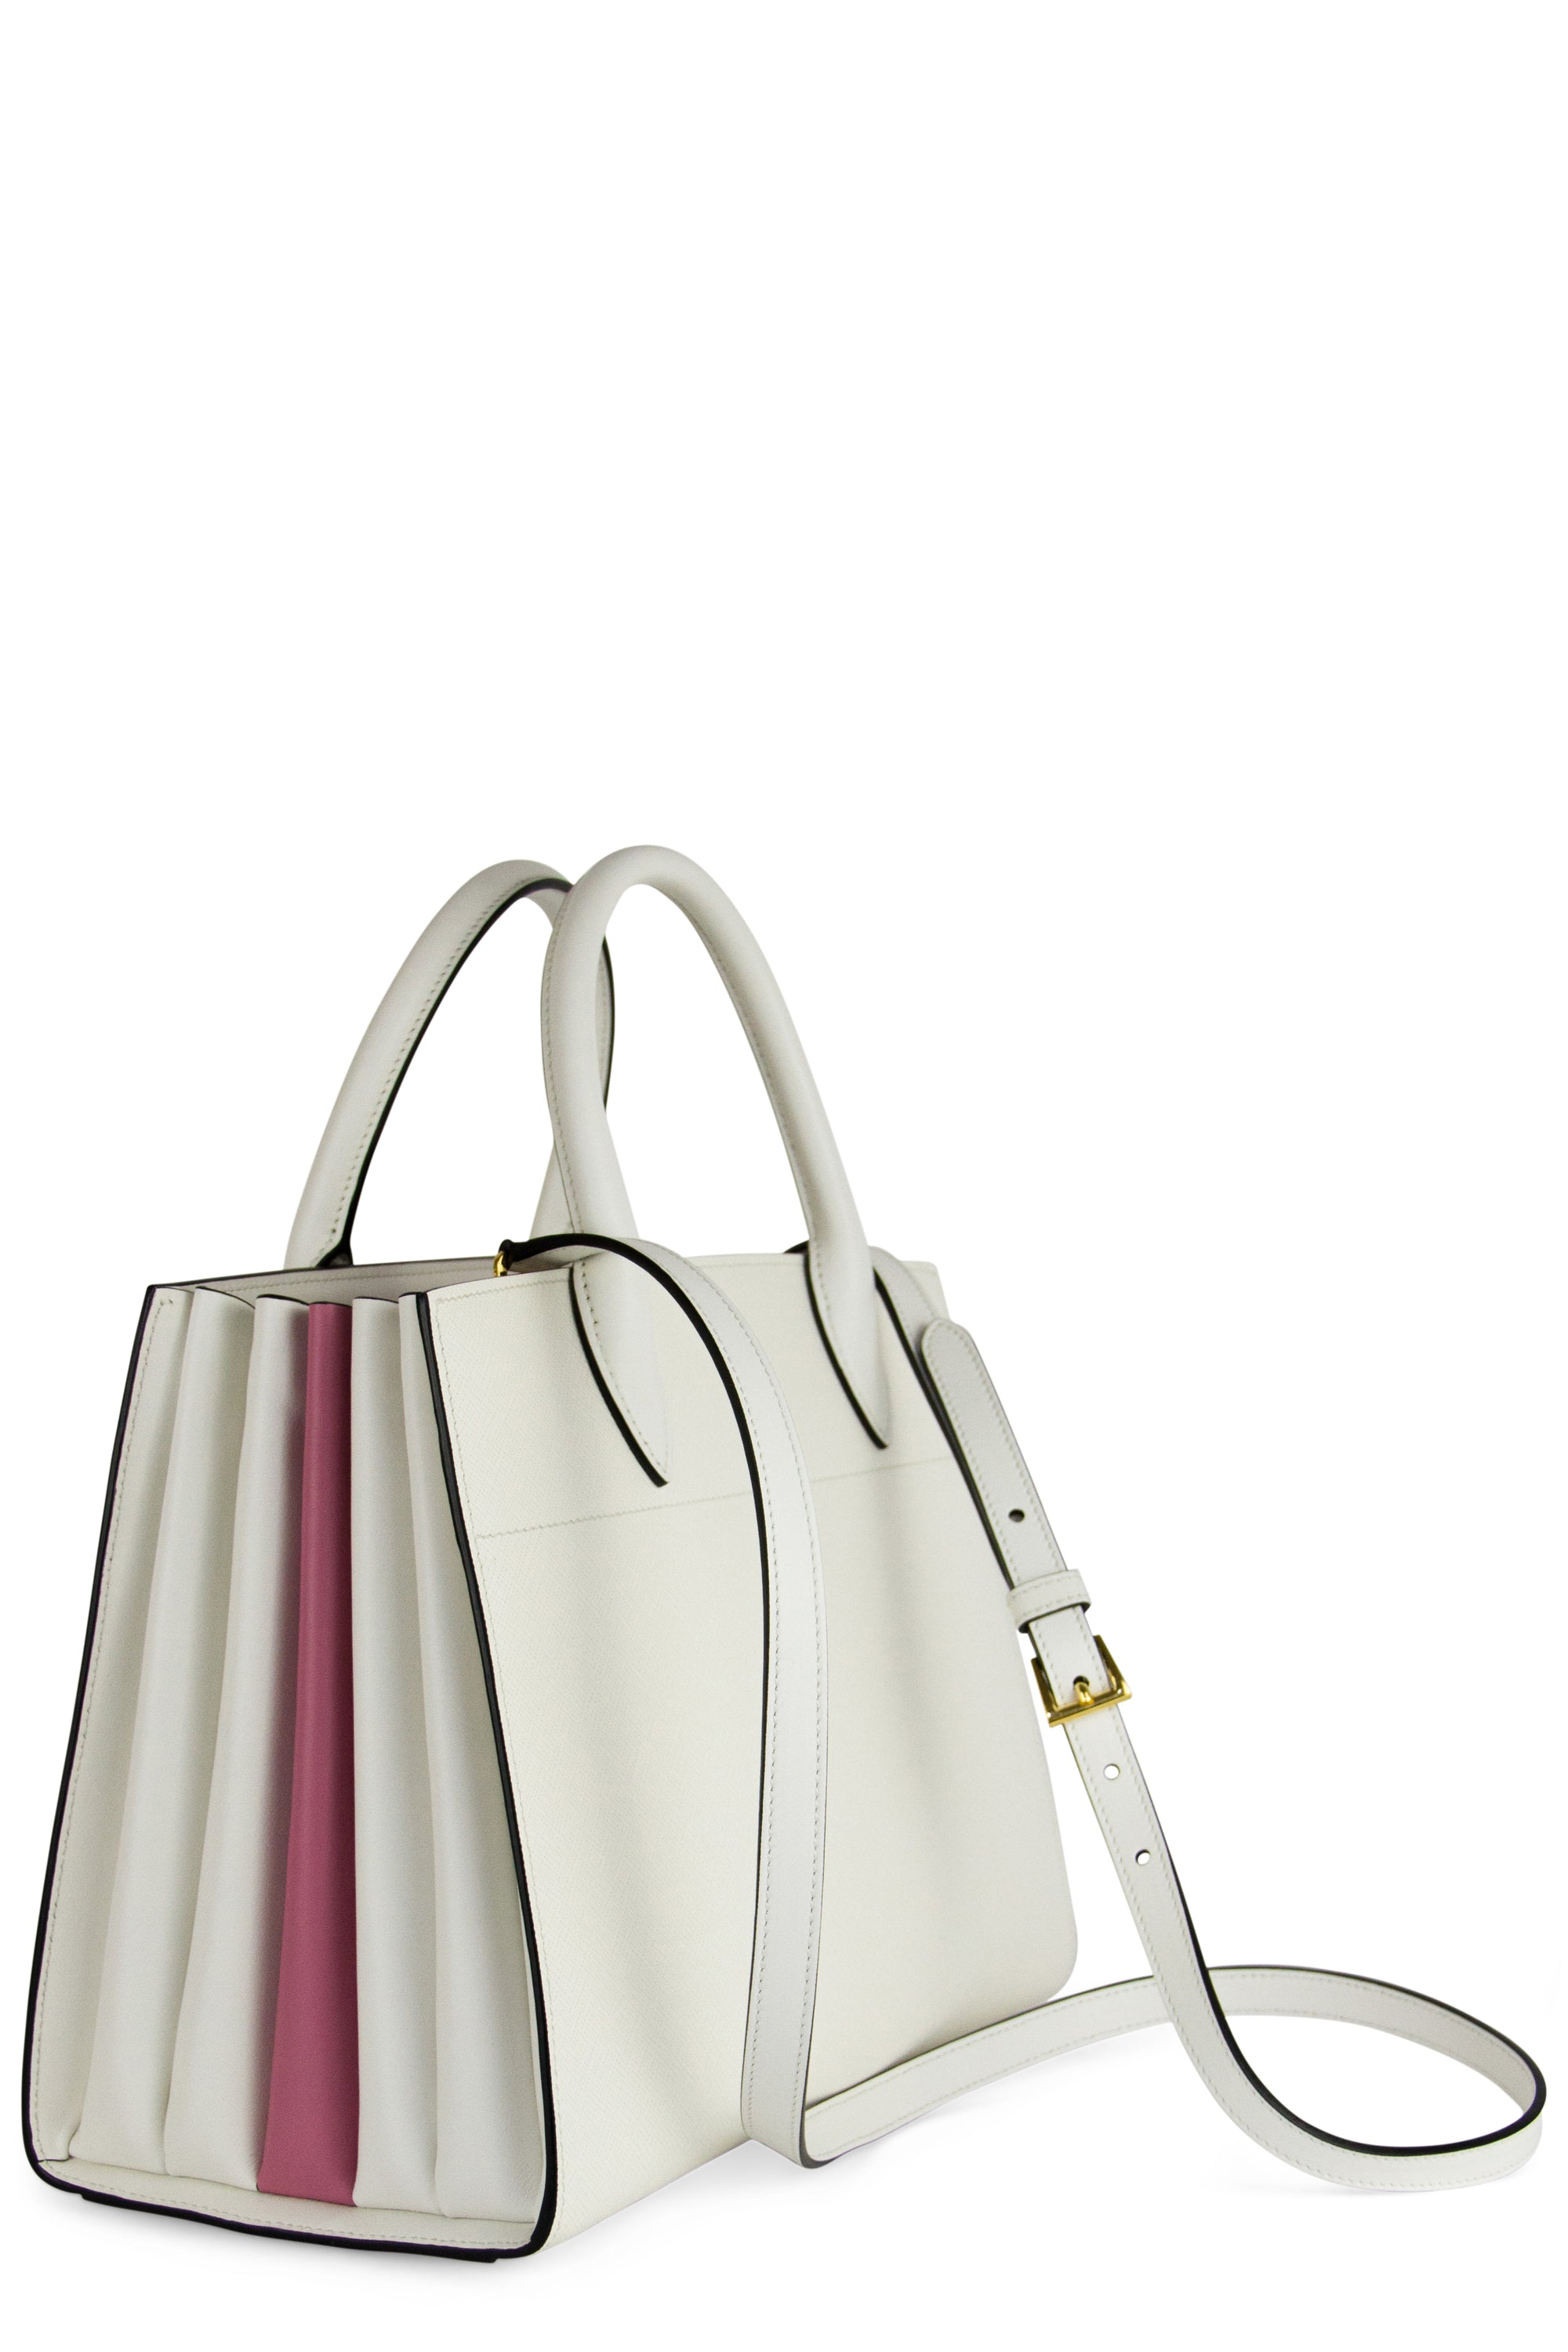 PRADA Saffiano City Bibliotheque Bag